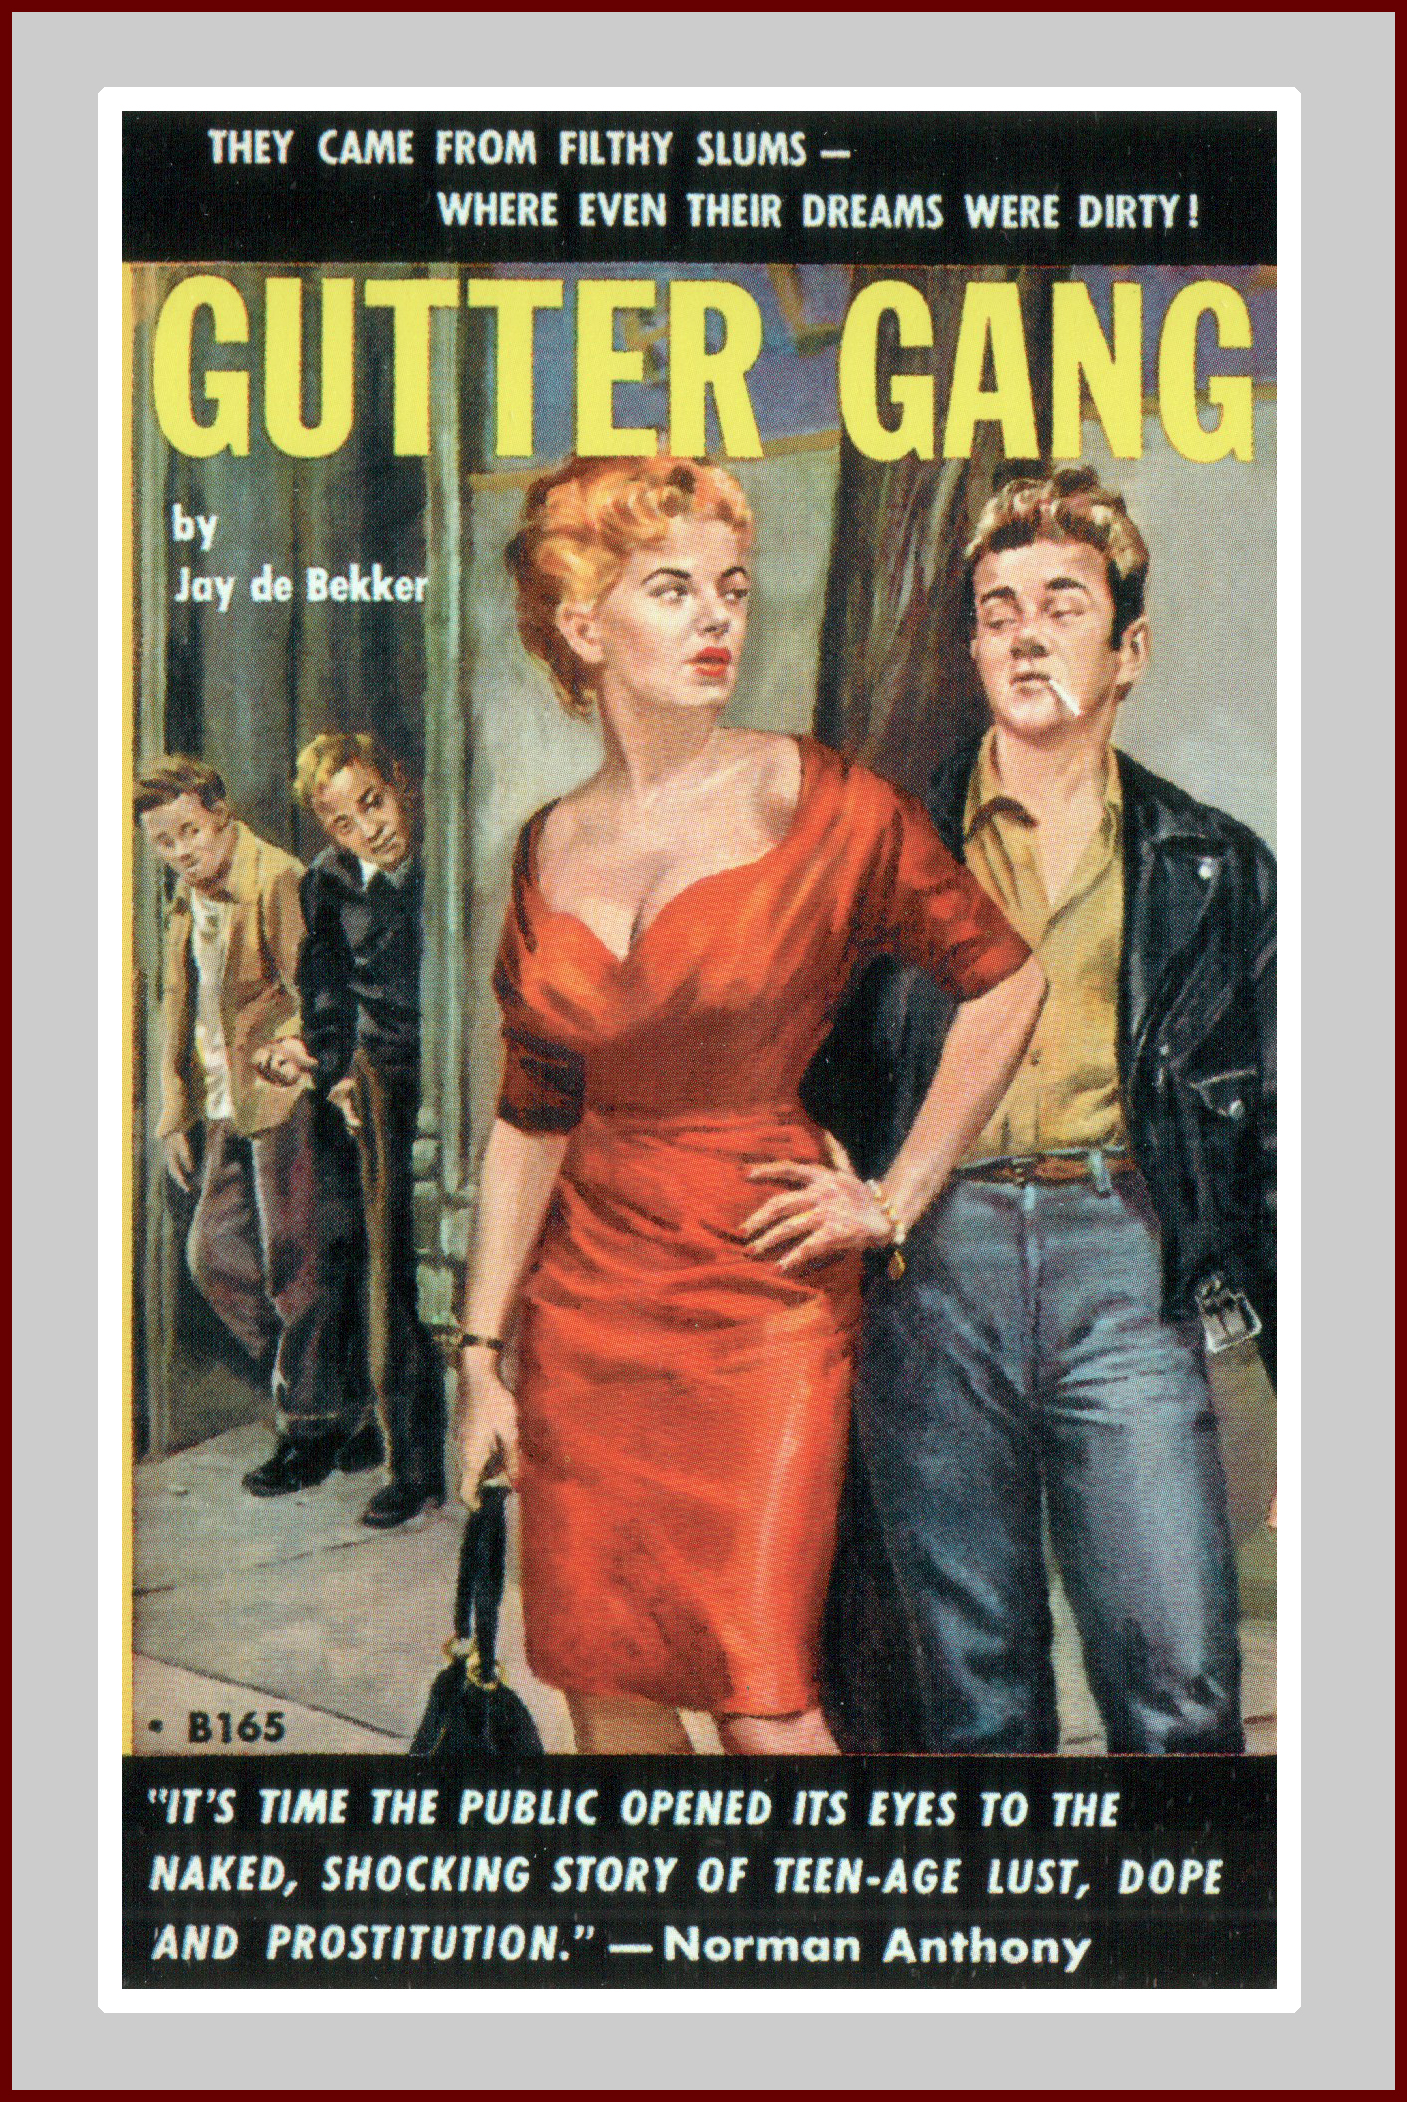 Gutter Gang: A Pulp Fiction Novel